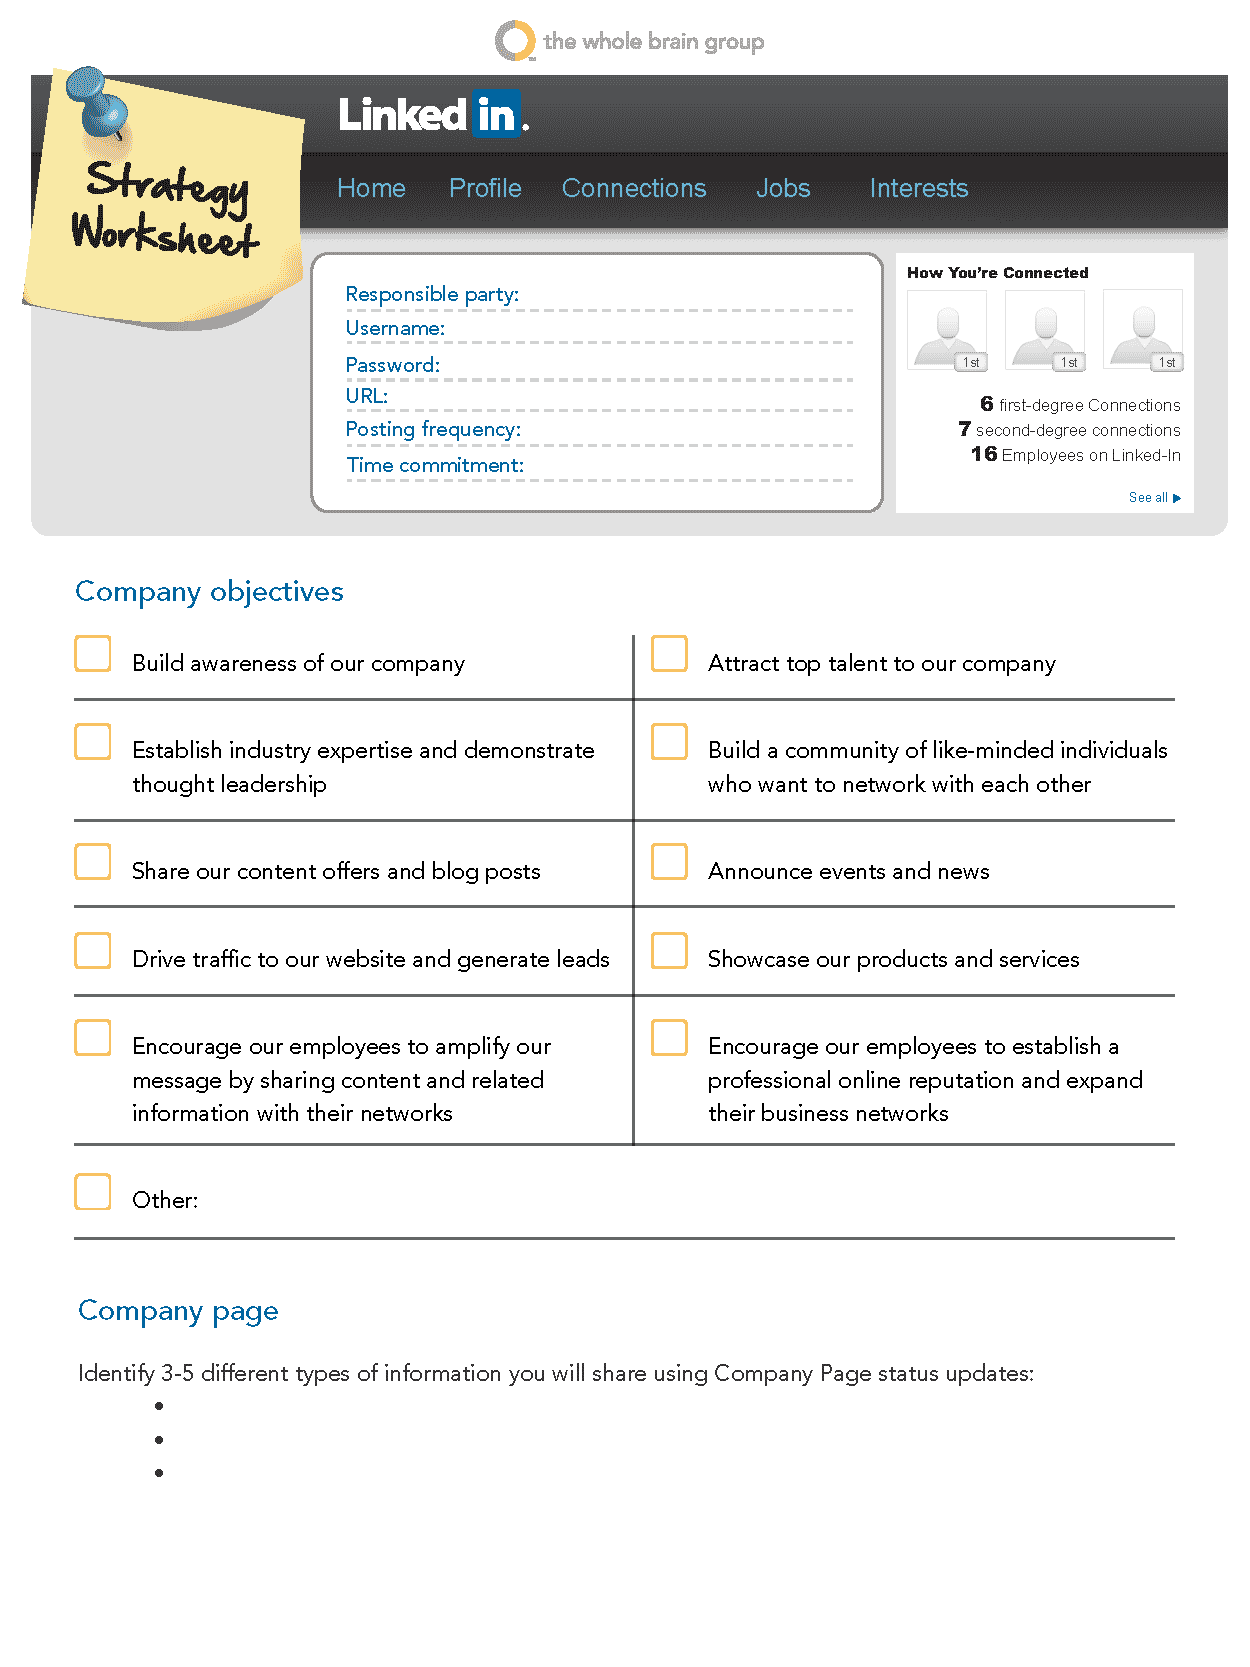 LinkedIn Strategy Worksheet - Page 1